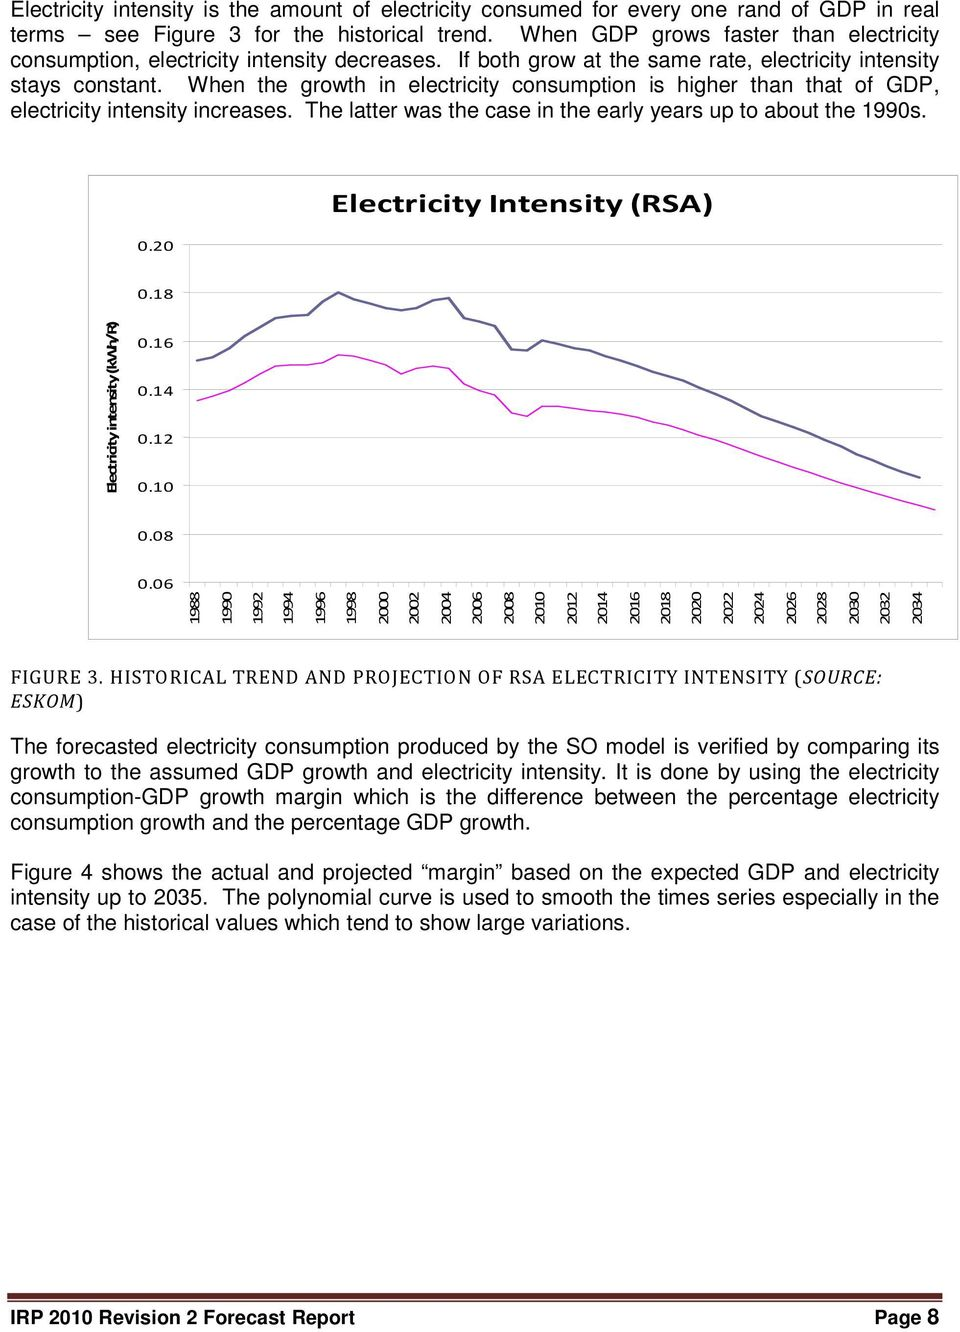 When the growth in electricity consumption is higher than that of GDP, electricity intensity increases. The latter was the case in the early years up to about the 1990s. 0.